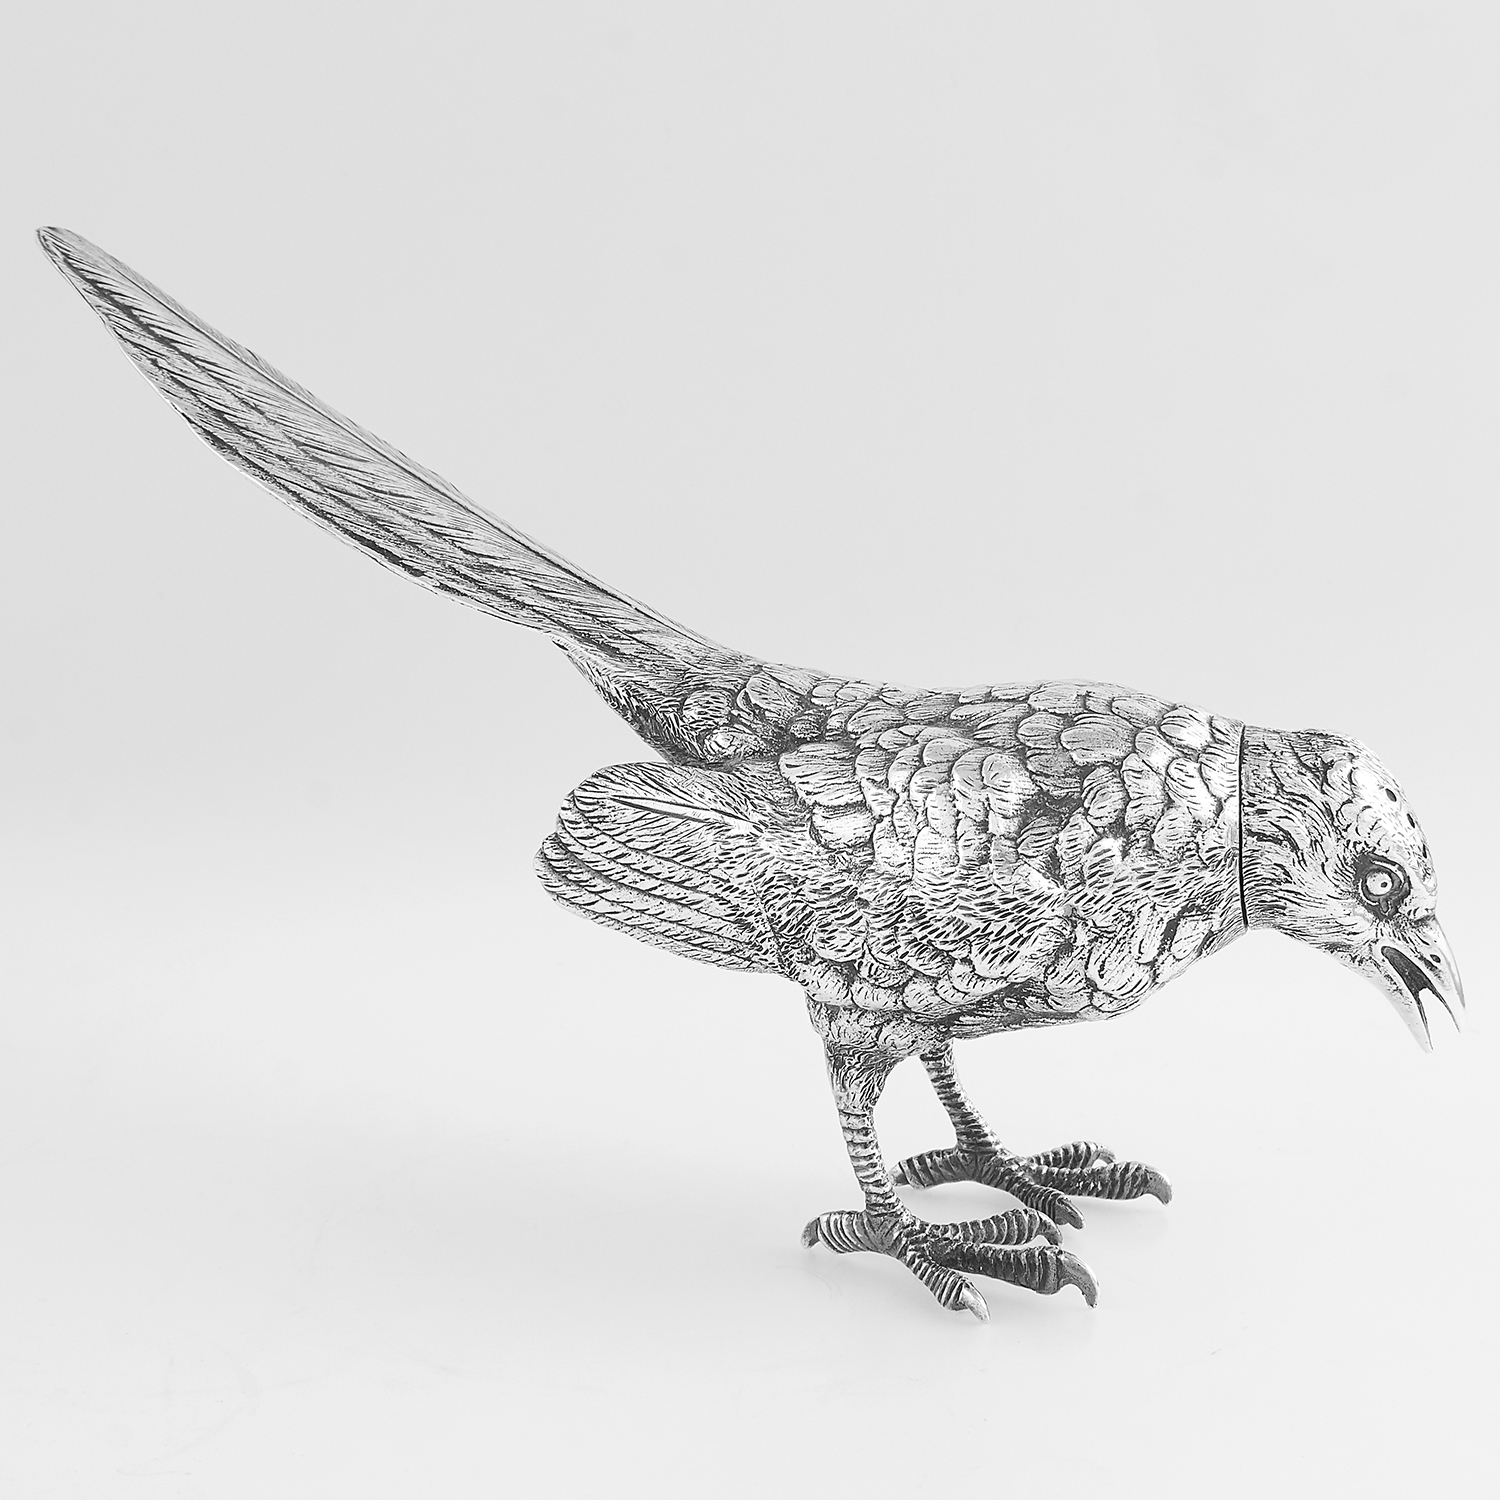 VINTAGE STERLING SILVER MAGPIE PEPPER POT, GARRARD & CO LONDON 1975 modelled as a magpie cast in